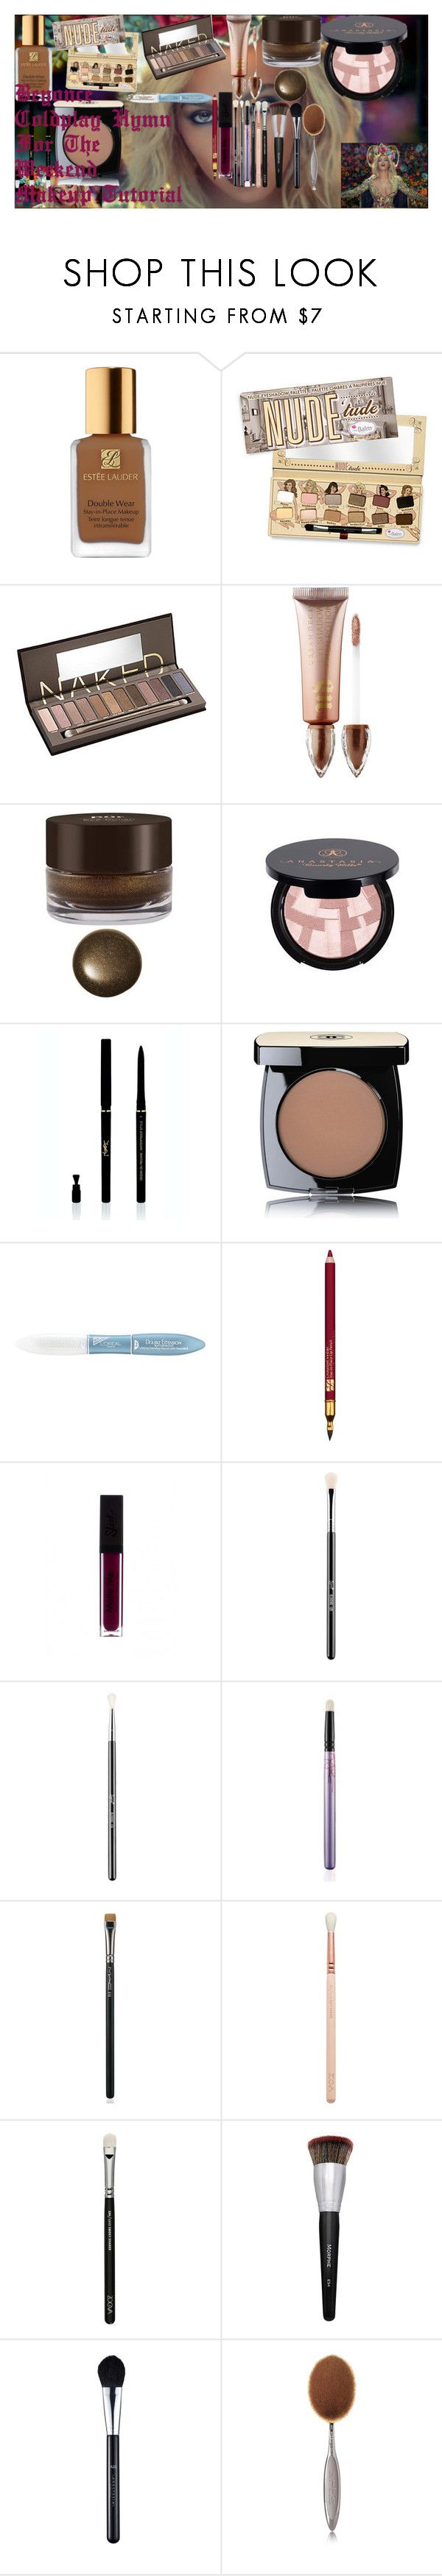 """Beyonce Coldplay Hymn For The Weekend Makeup Tutorial"" by oroartye-1 on Polyvore featuring beauty, Reine, Estée Lauder, Urban Decay, PUR, Anastasia Beverly Hills, Yves Saint Laurent, Chanel, L'Oréal Paris and Sigma"